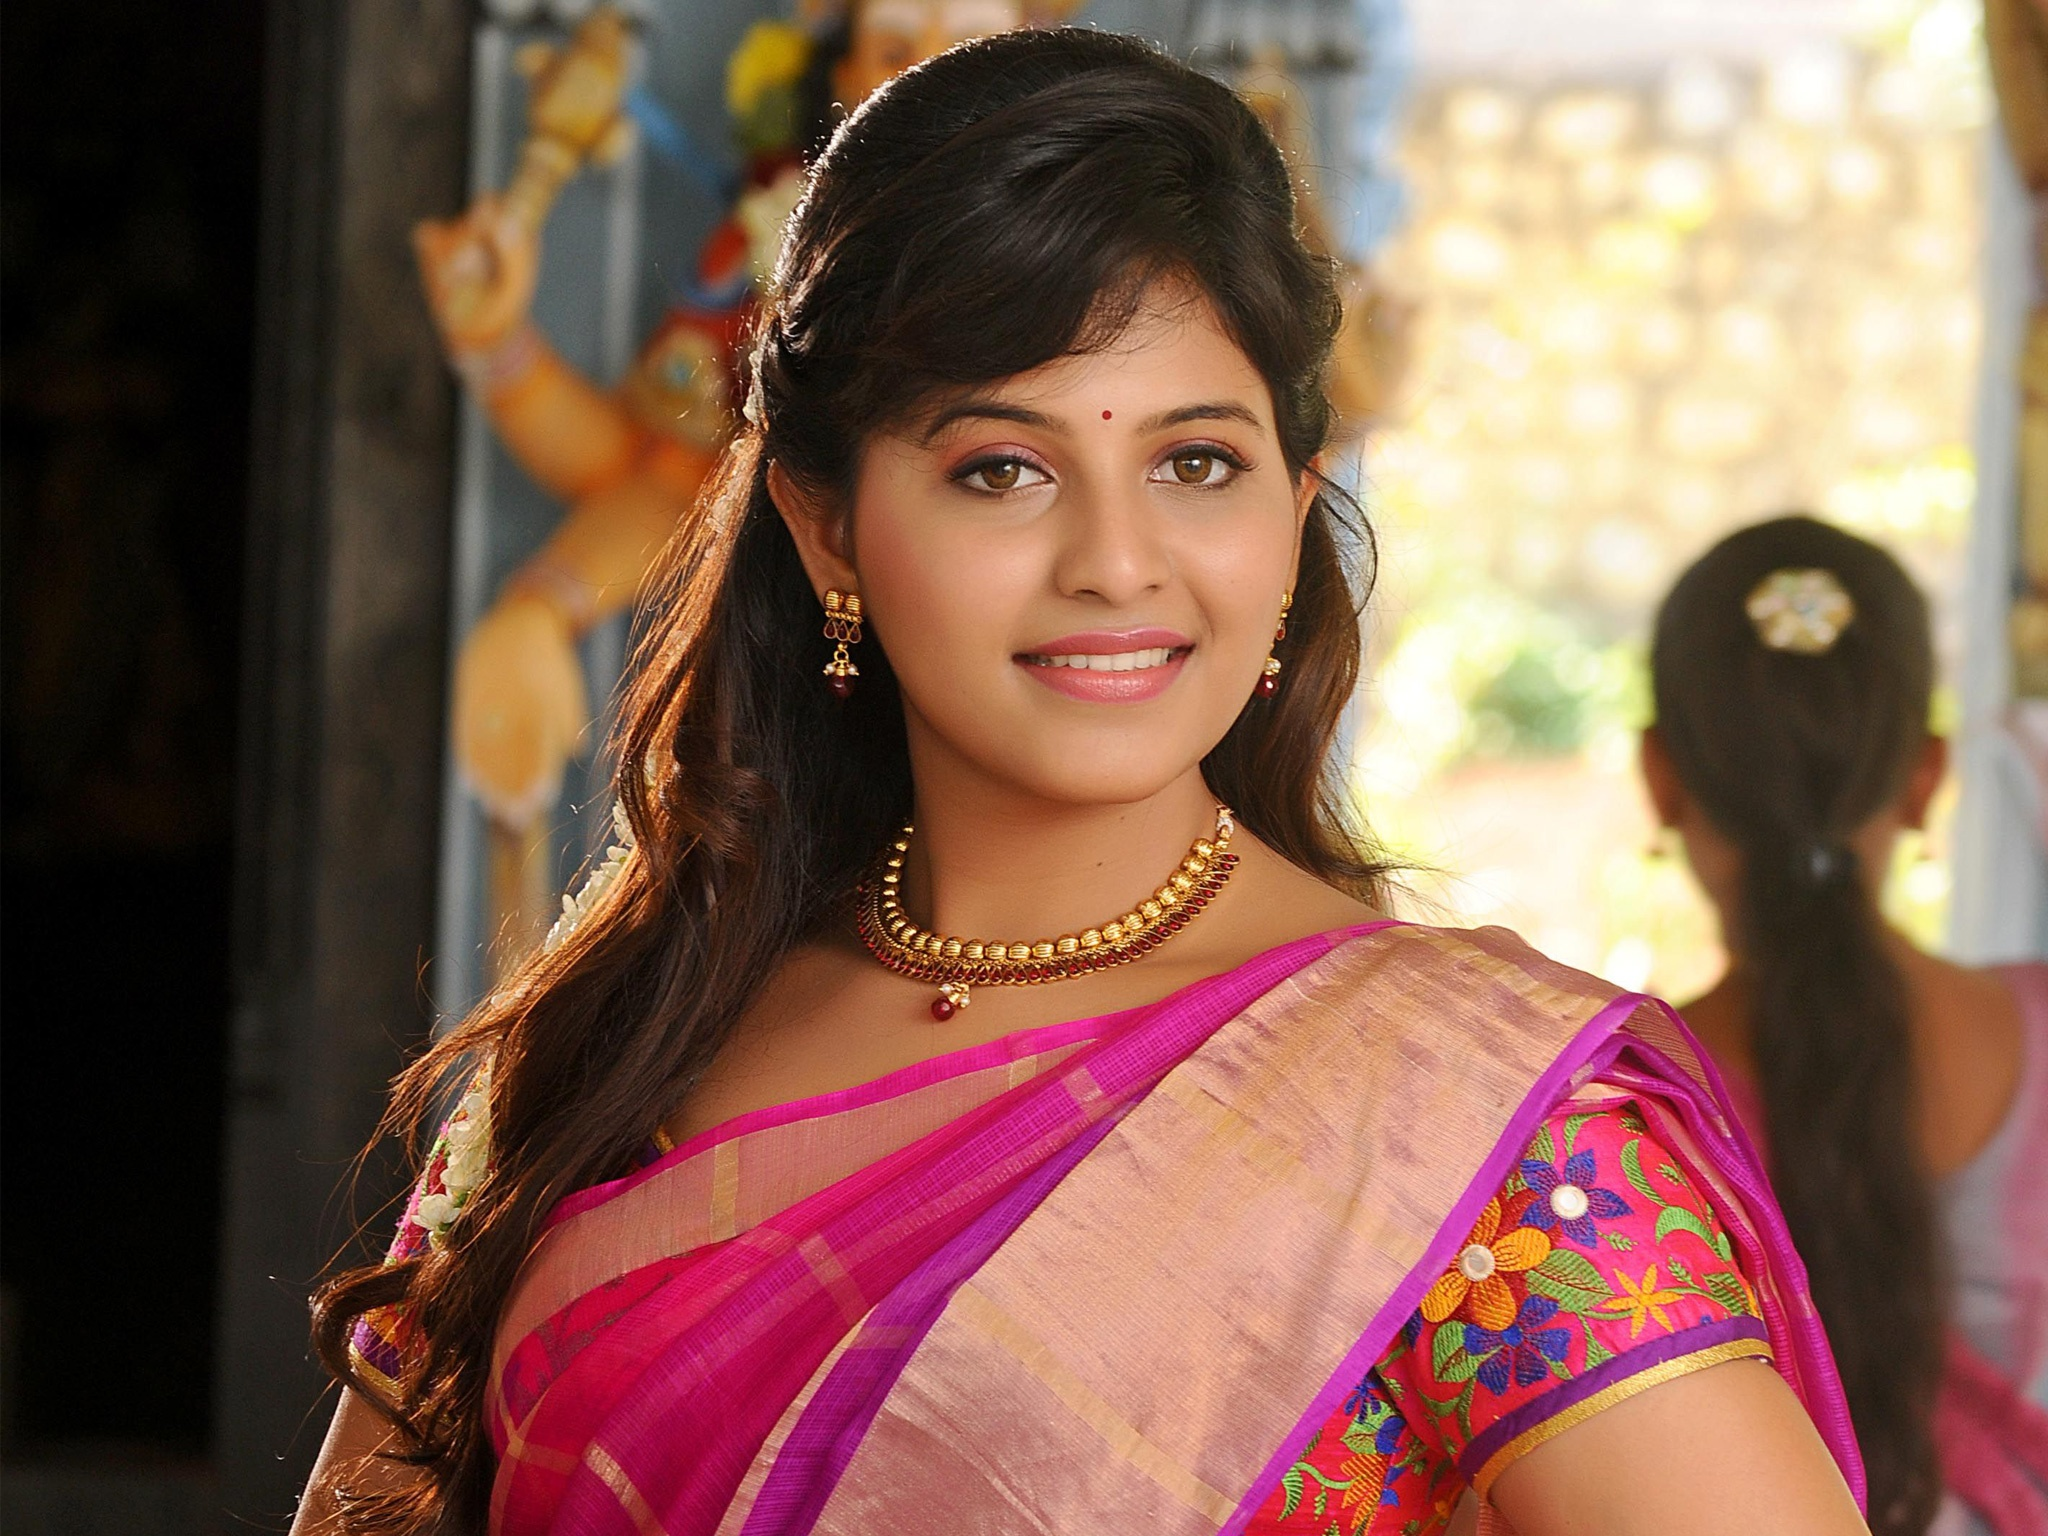 south indian actress wallpapers top free south indian actress backgrounds wallpaperaccess south indian actress wallpapers top